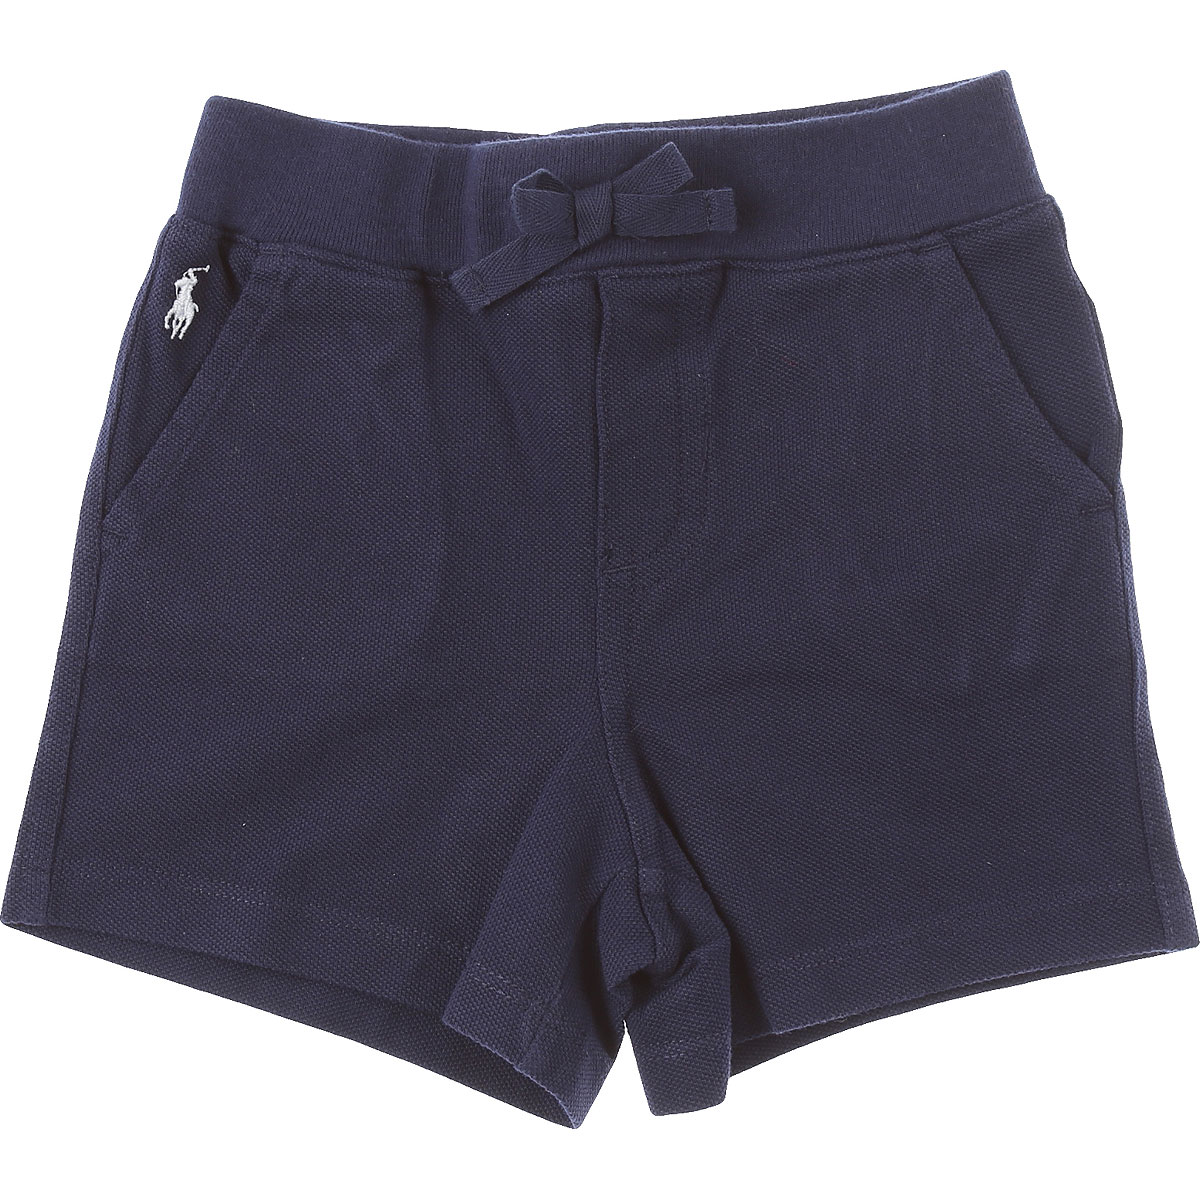 Ralph Lauren Baby Shorts for Boys On Sale, nav, Cotton, 2019, 18 M 2Y 6M 9 M